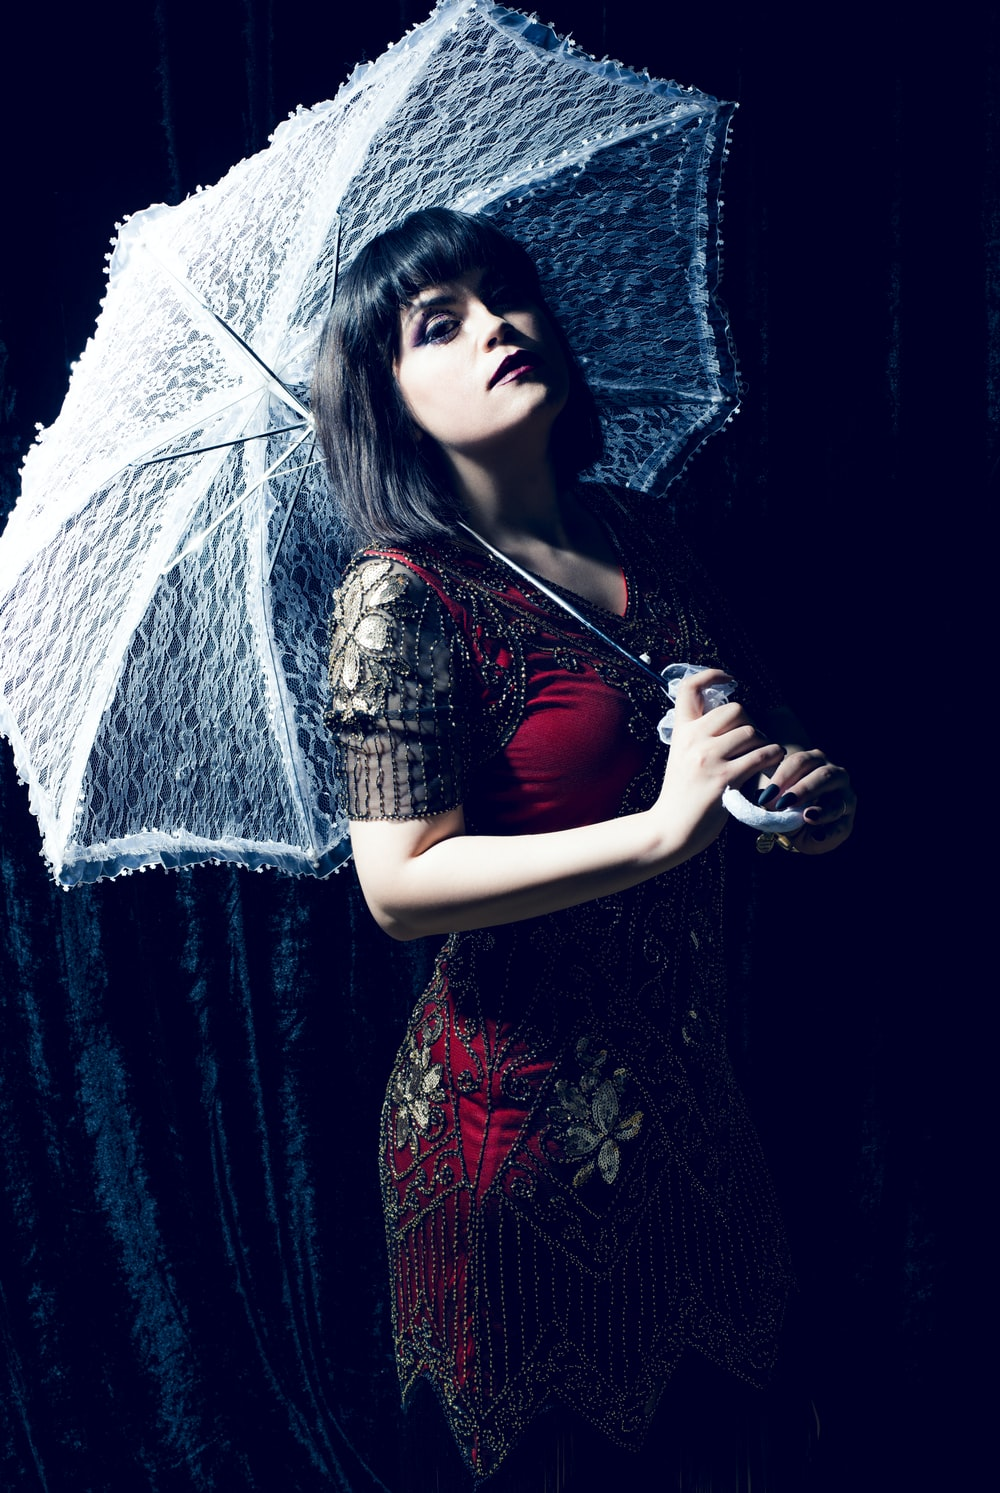 woman in red and black dress holding umbrella